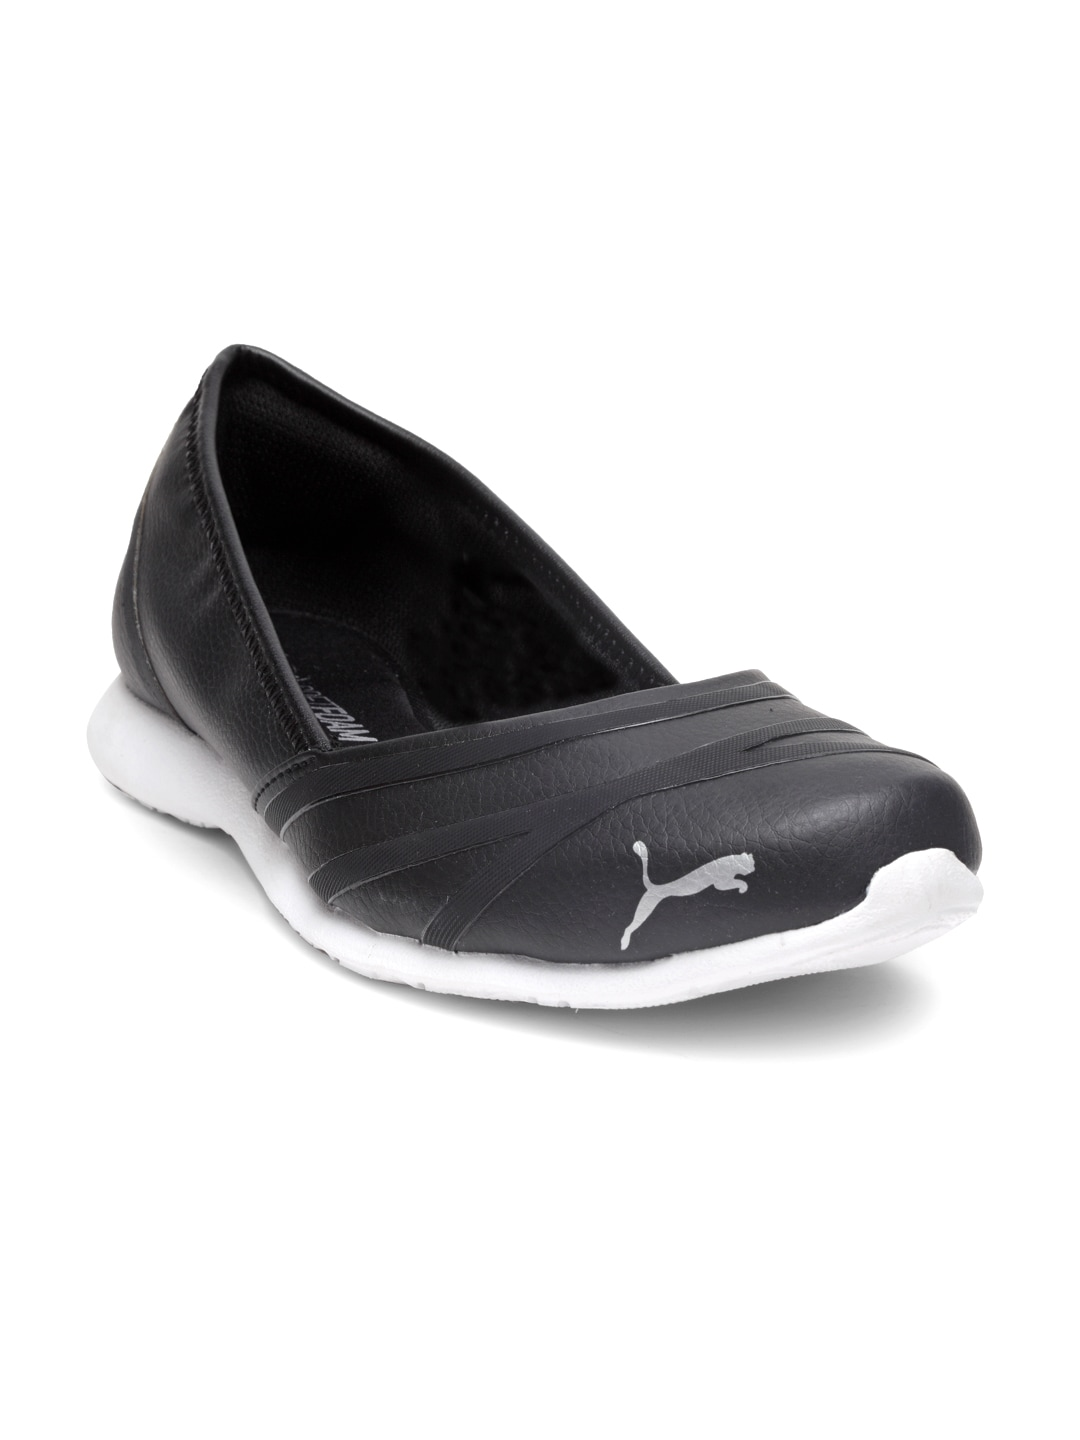 2fa12af231e3d5 Puma Flats - Buy Puma Flats Online in India